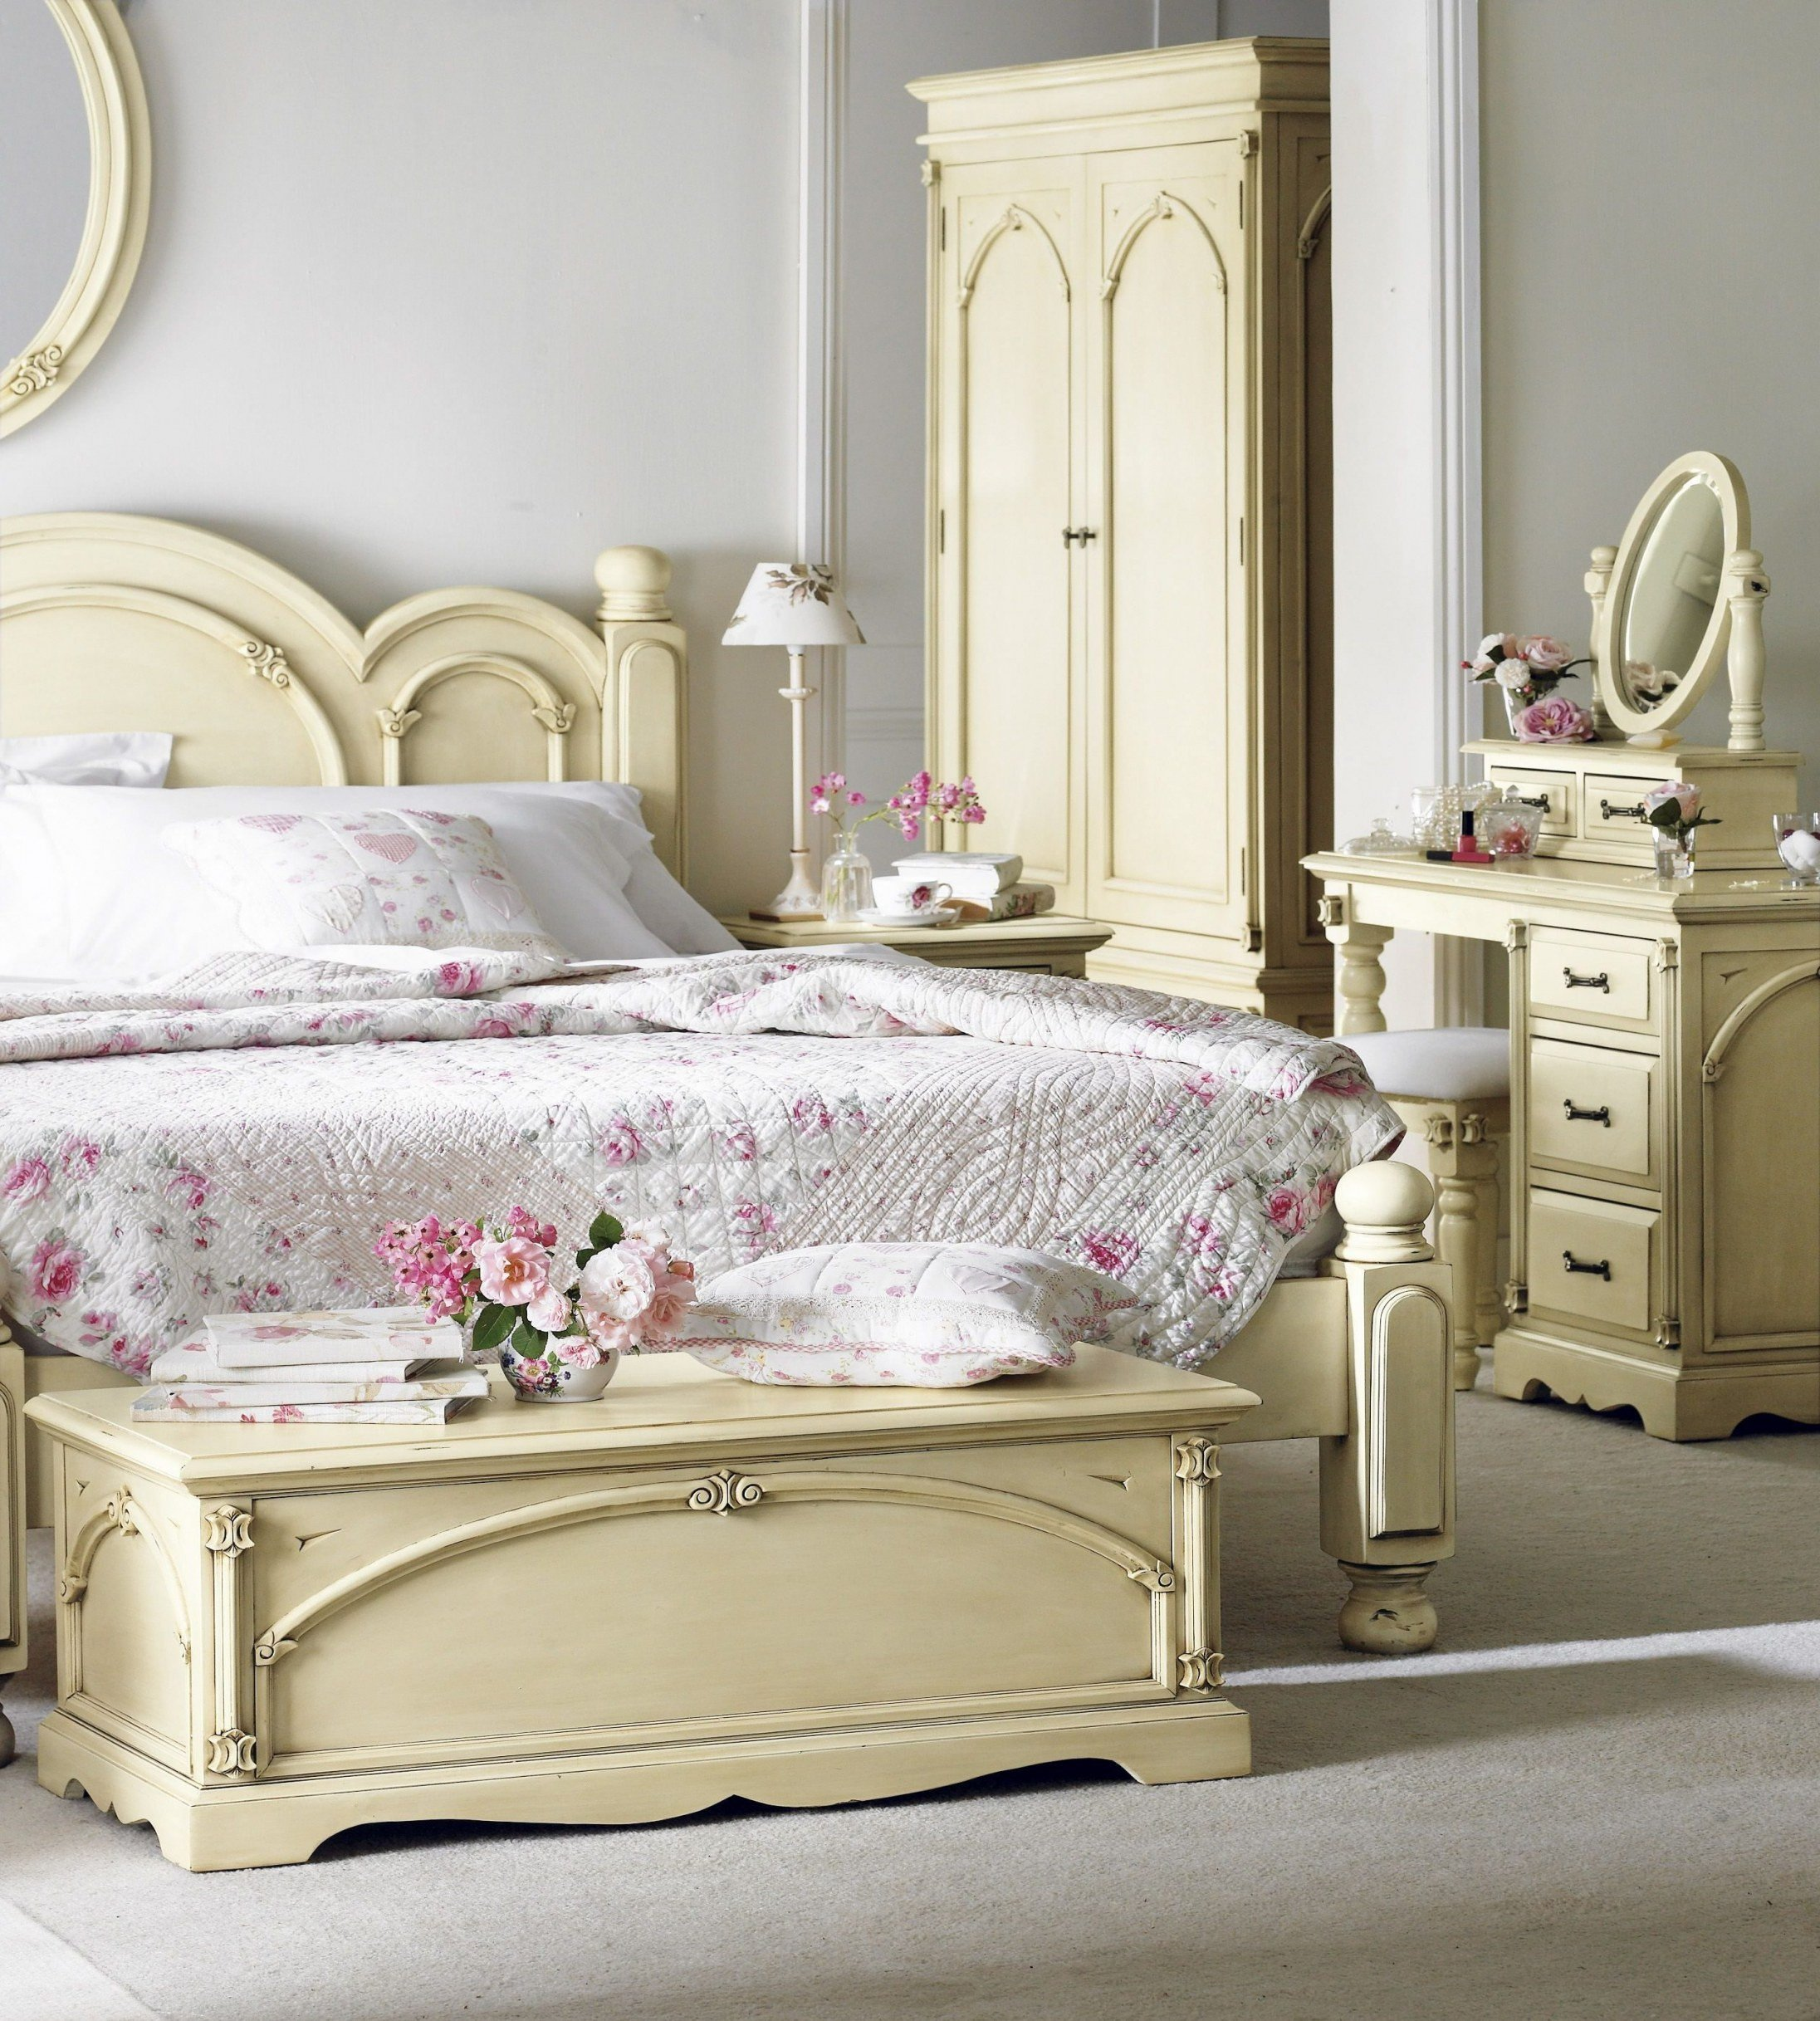 Bedroom Furniture for Teens Inspirational Teen Girls Bedroom Ideas Bedroom Cool Gray Bedroom Decor